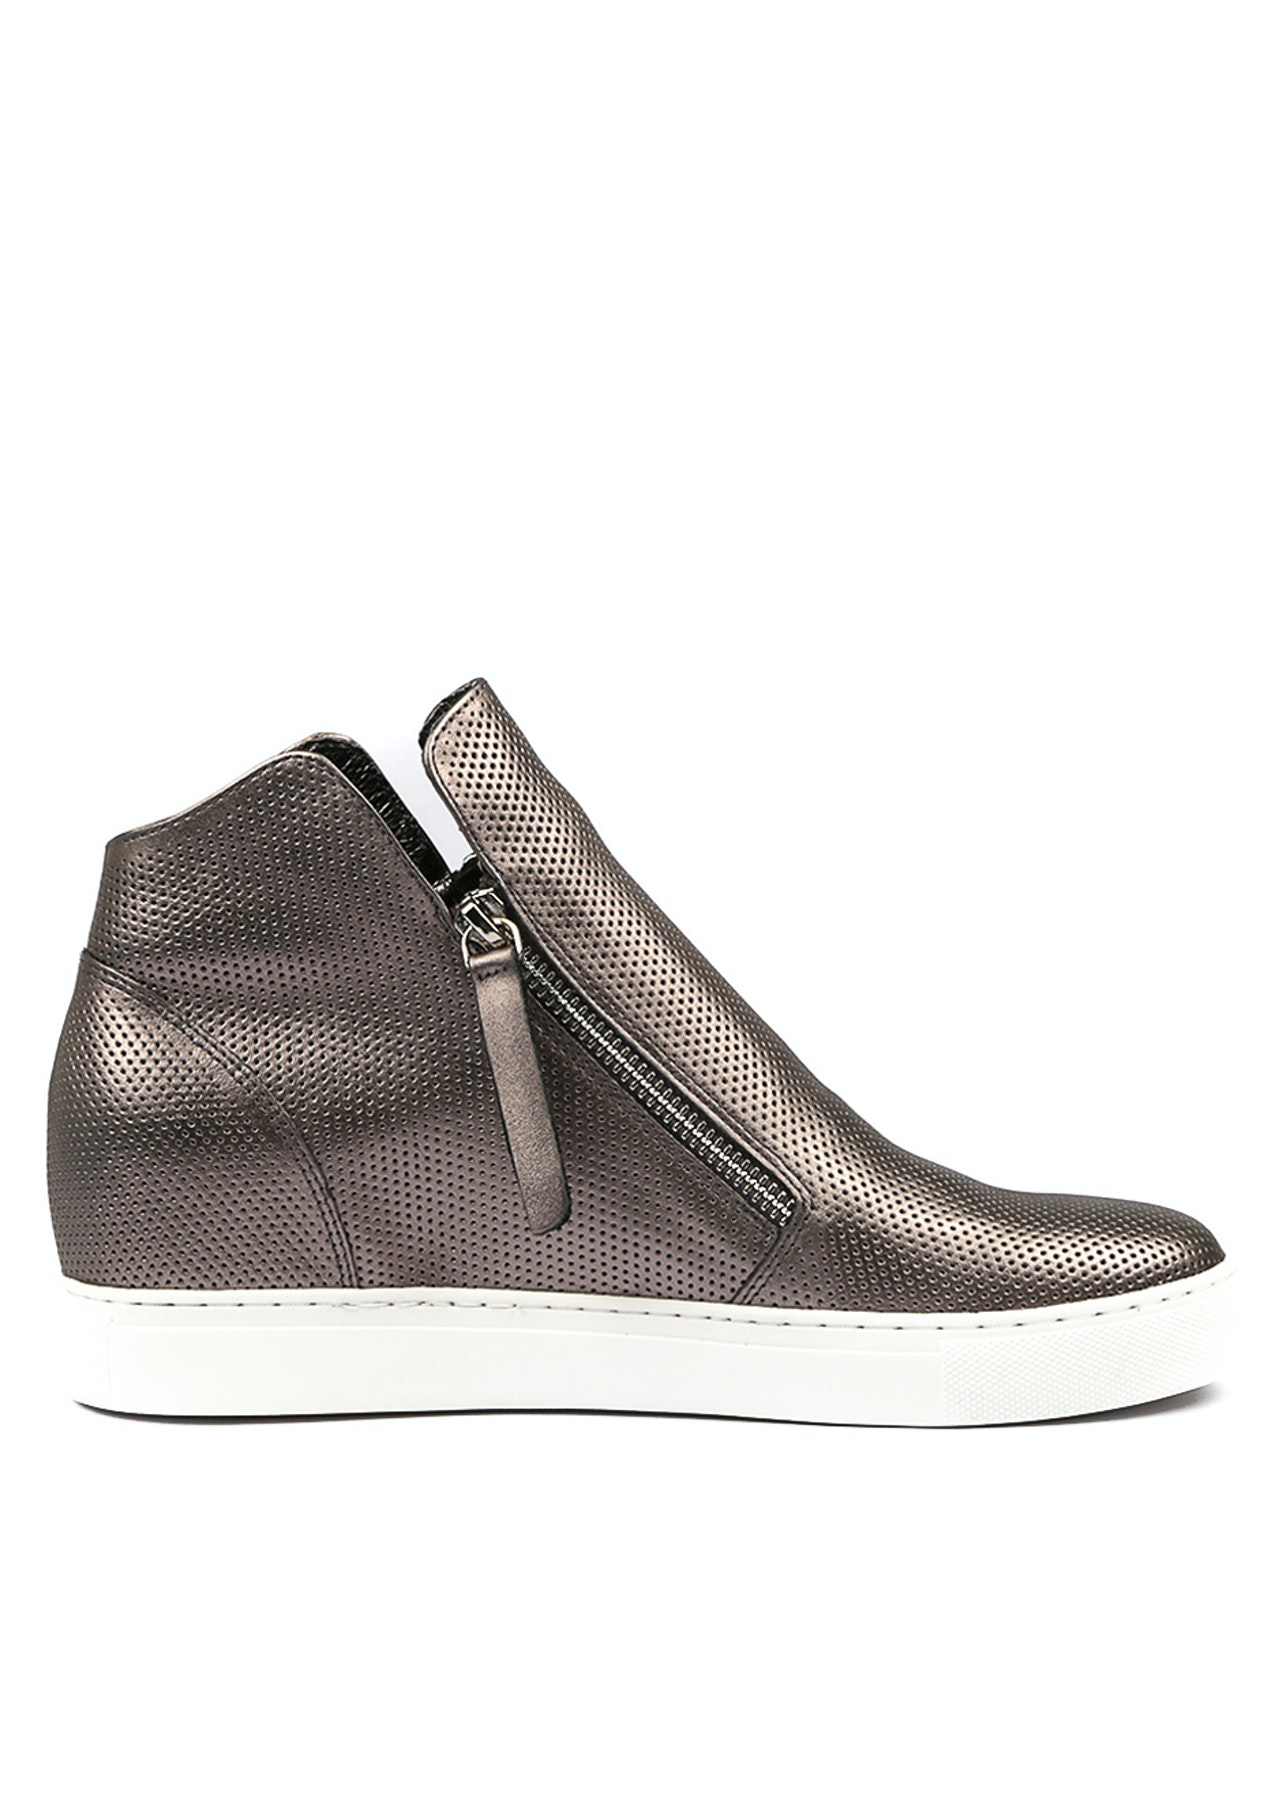 f69073b670dc Django   Juliette - Gisele - Pewter Leather - Back by Popular Demand  the  Gisele Boot - Onceit